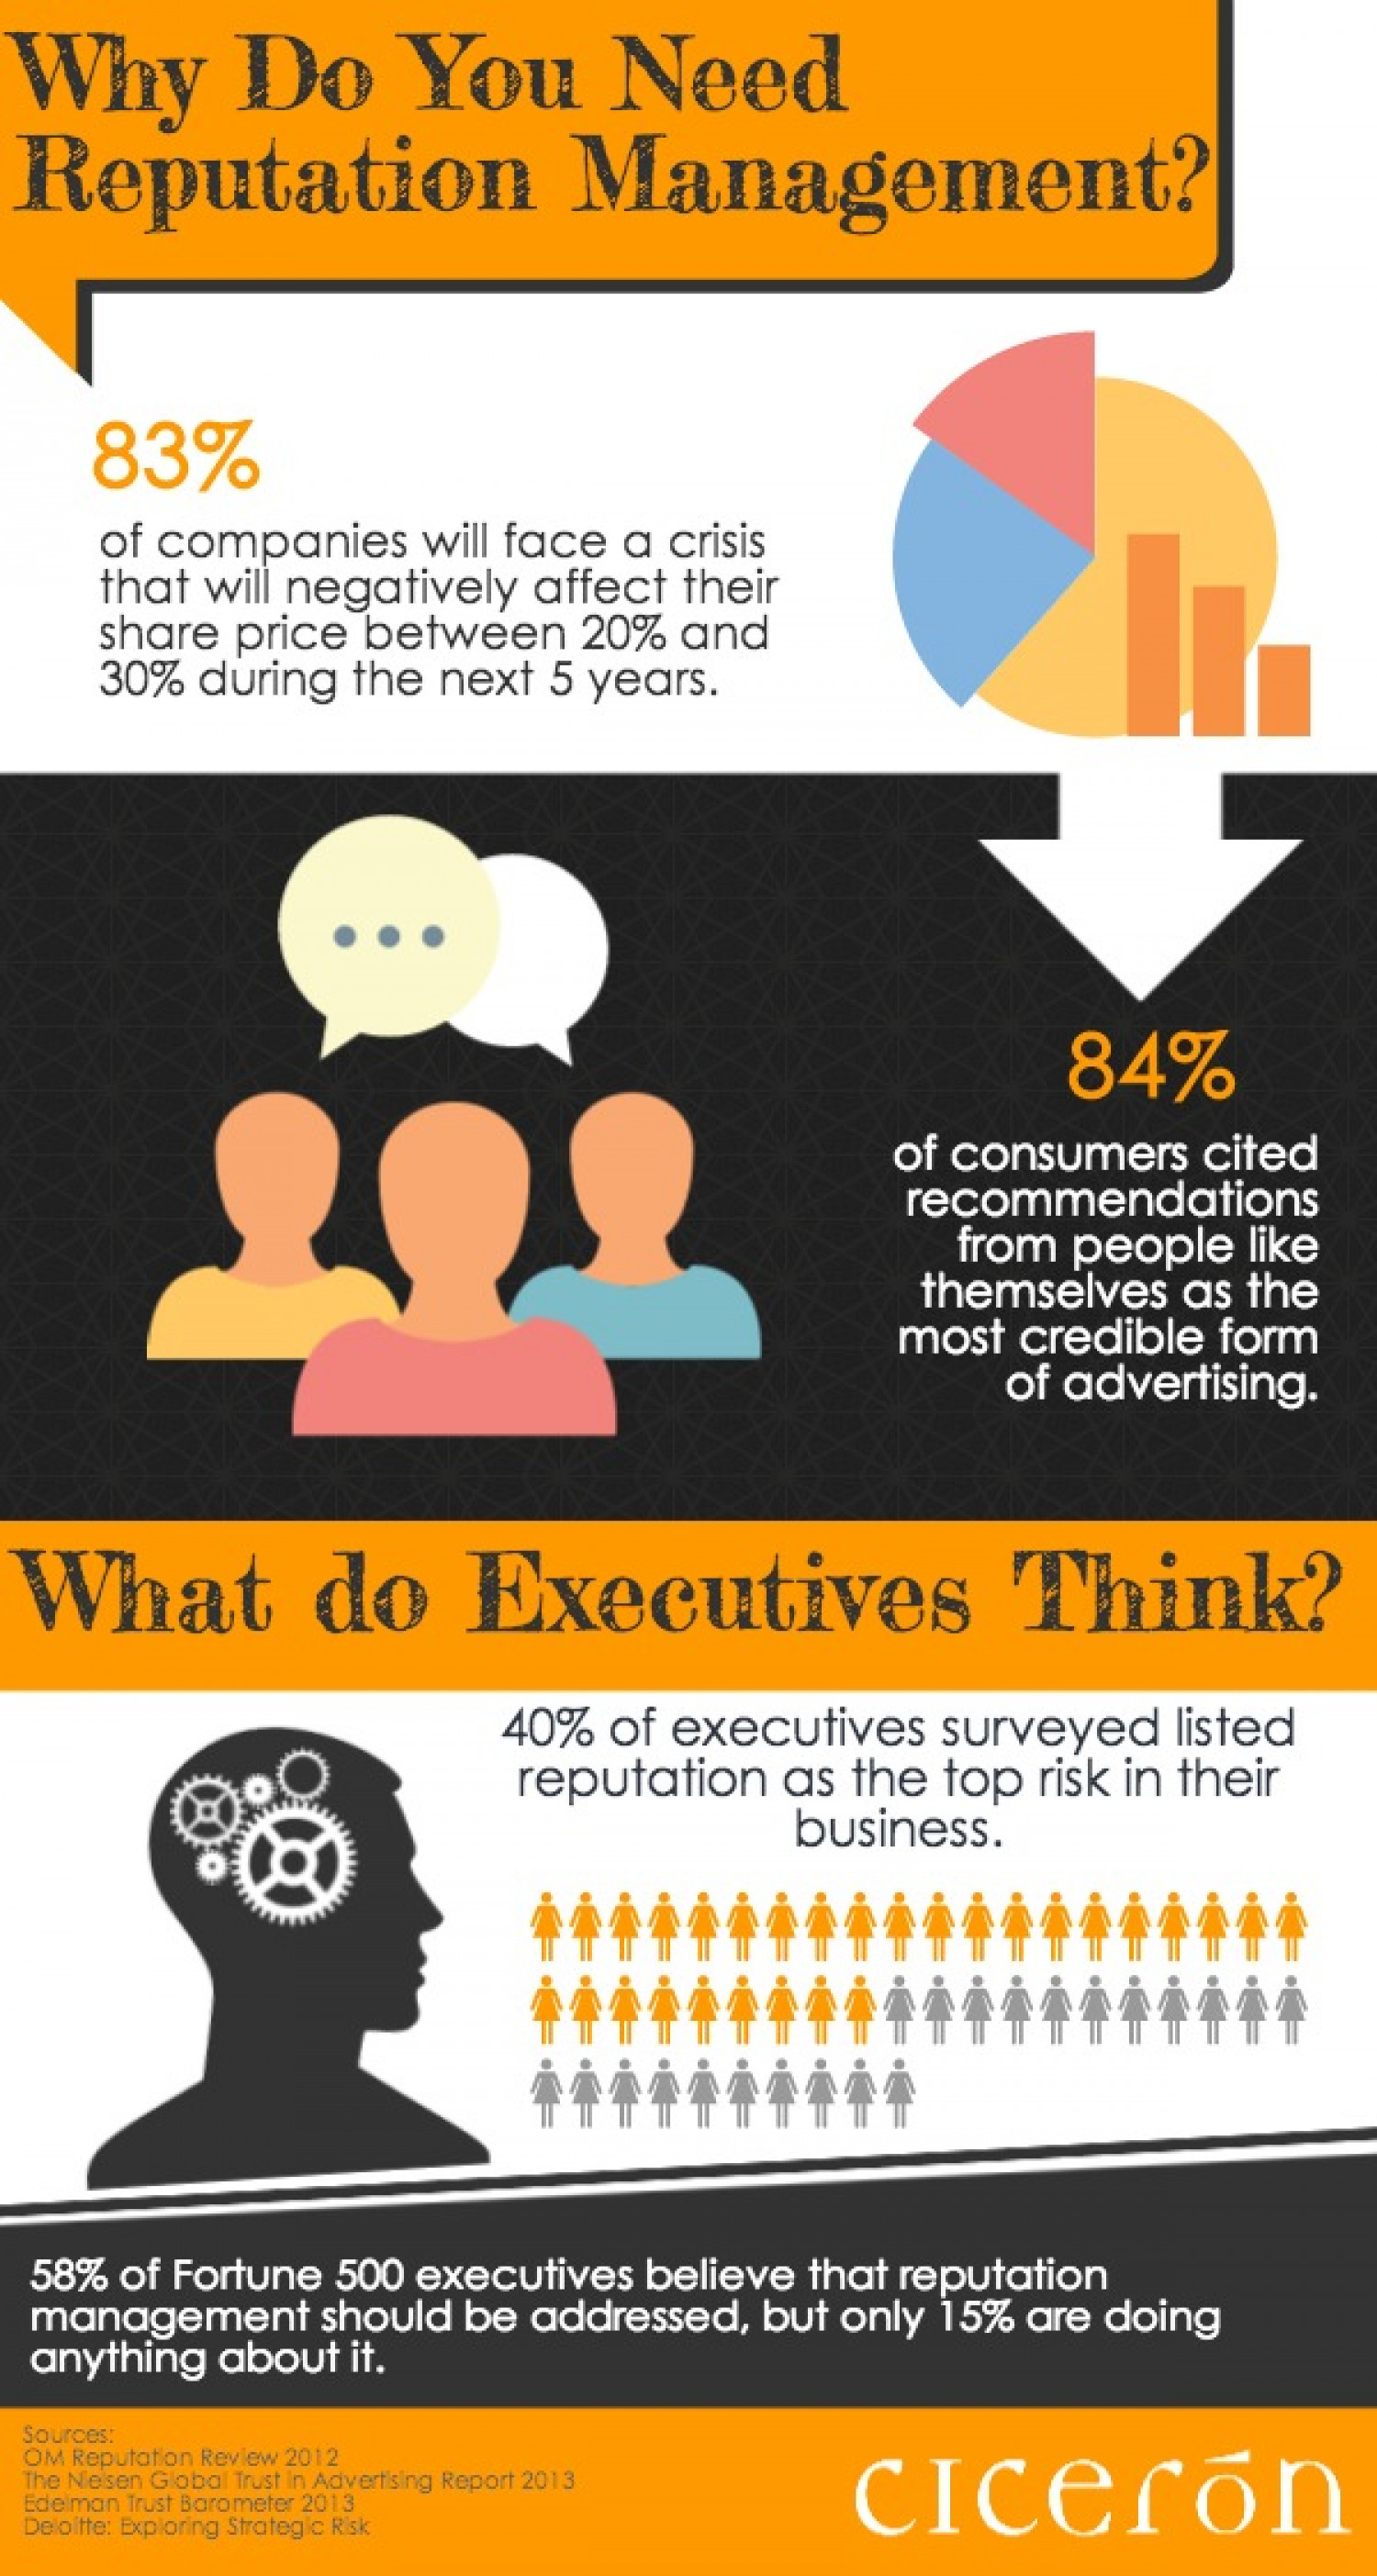 Why Do You Need Reputation Management? Infographic